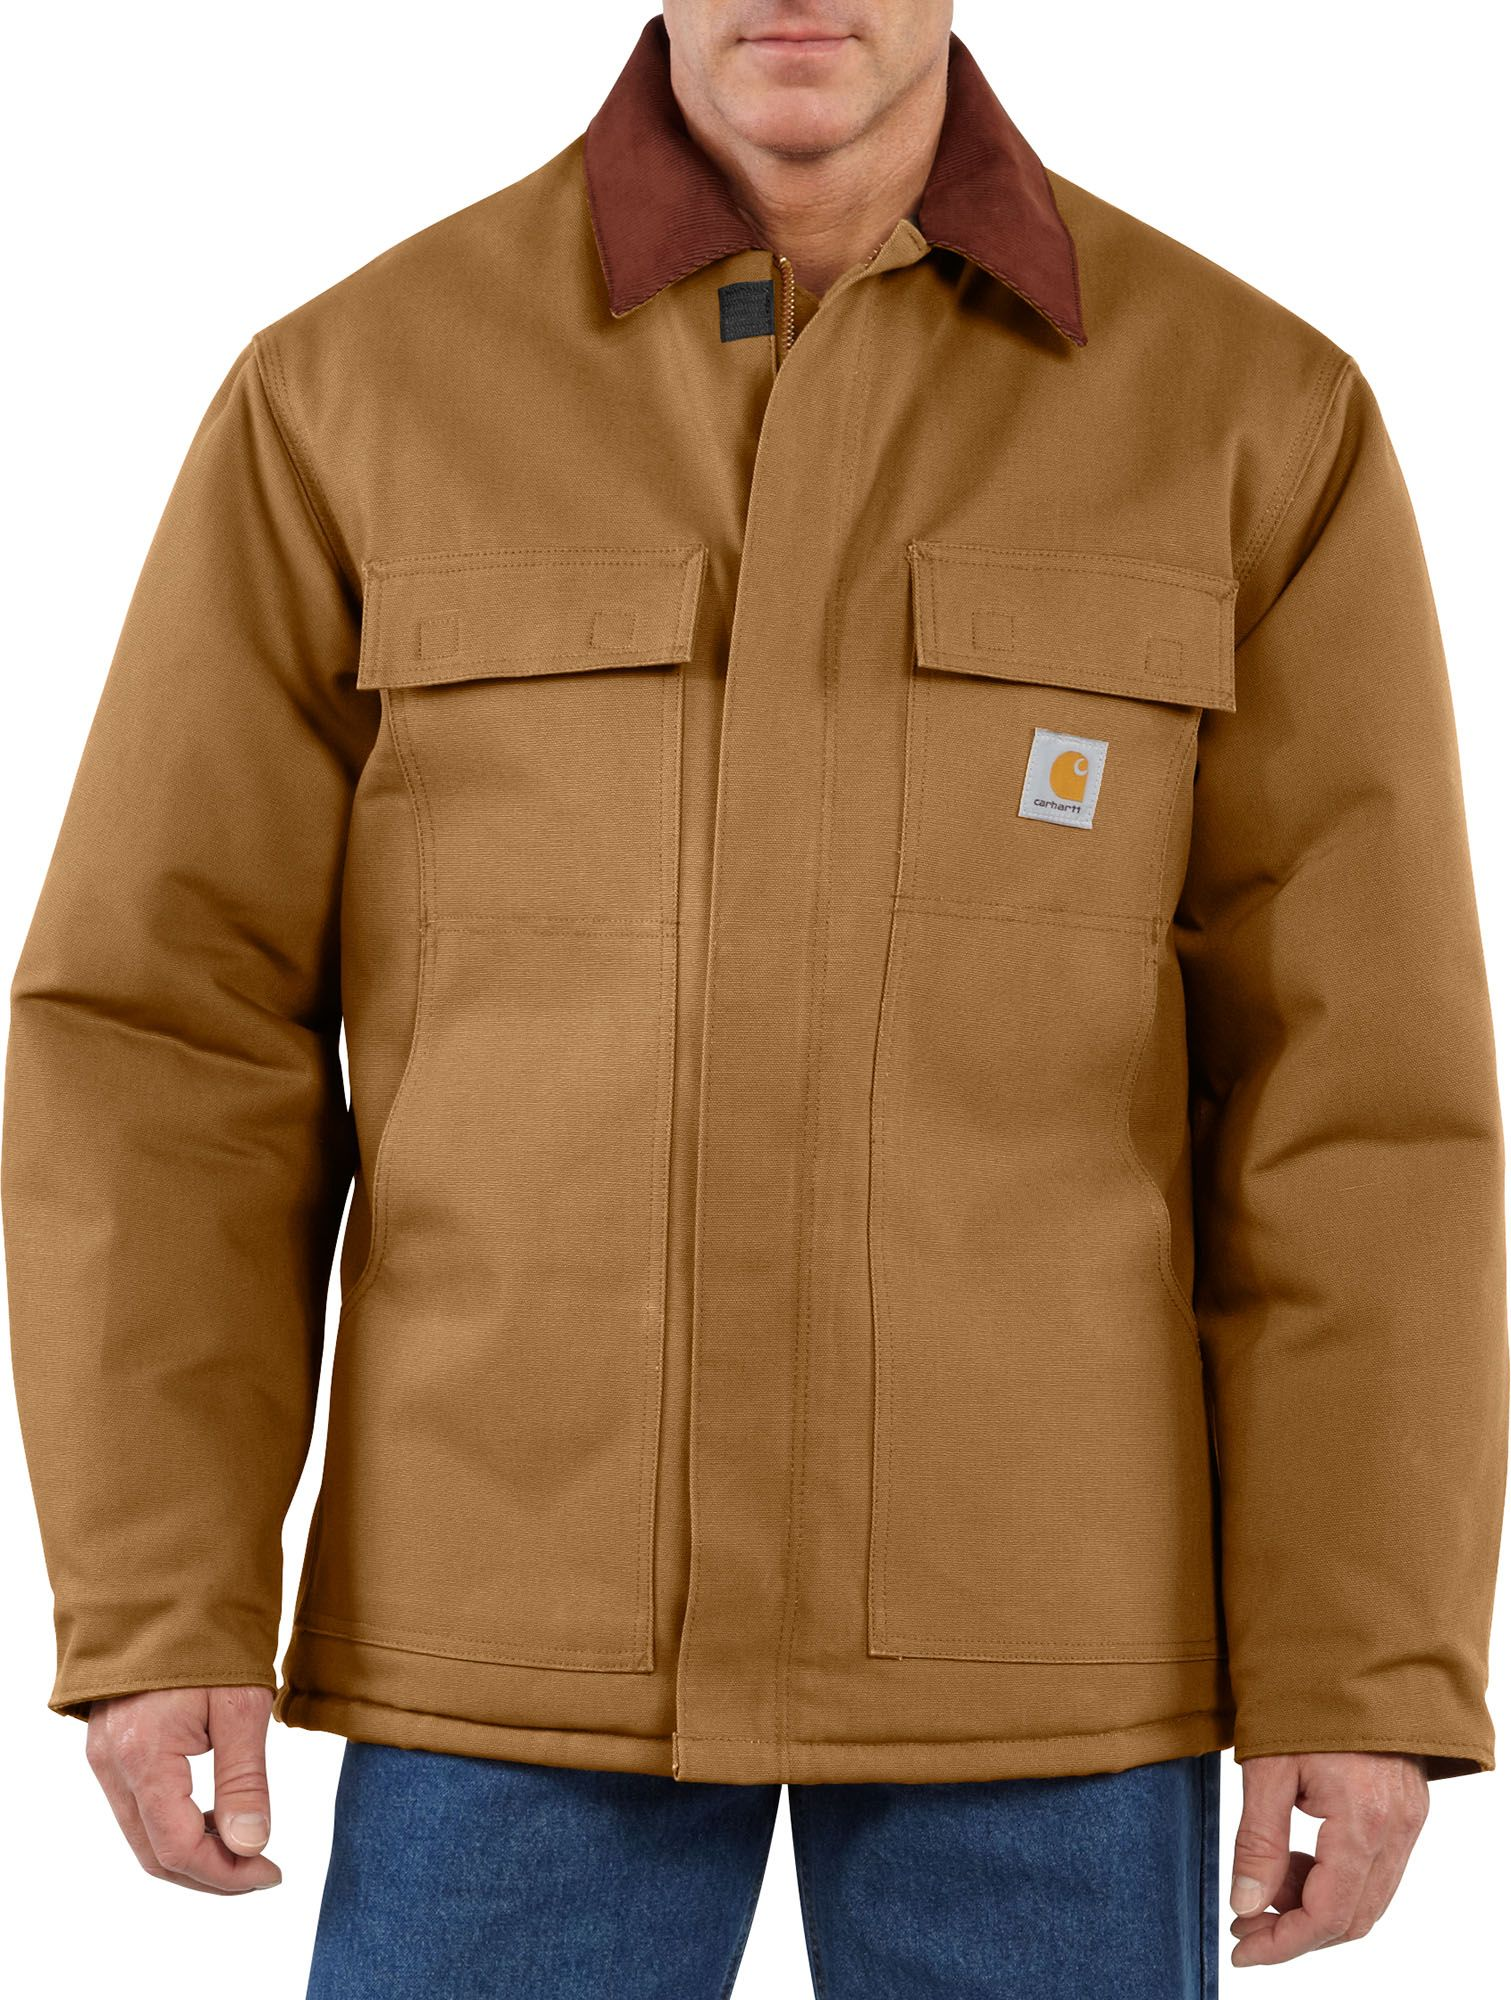 Carhartt Men's Traditional Arctic Quilt-Lined Jacket | DICK'S ... : carhartt quilt lined jacket - Adamdwight.com